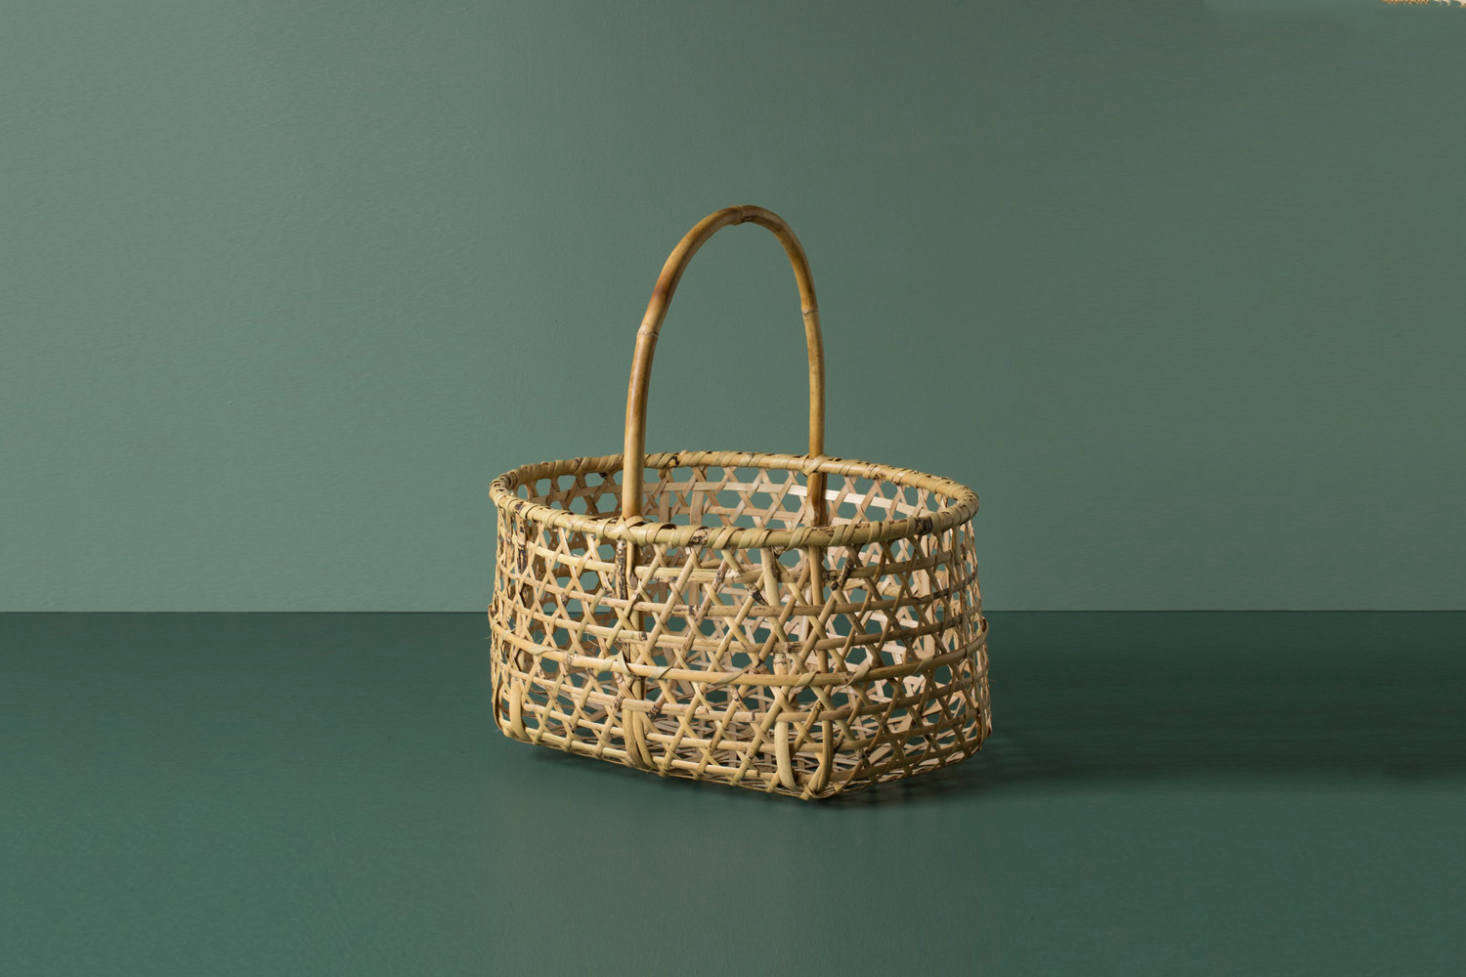 The Japanese Craft Apple Farmer's Basket is handwoven in bamboo for $185 at Everyday Needs.